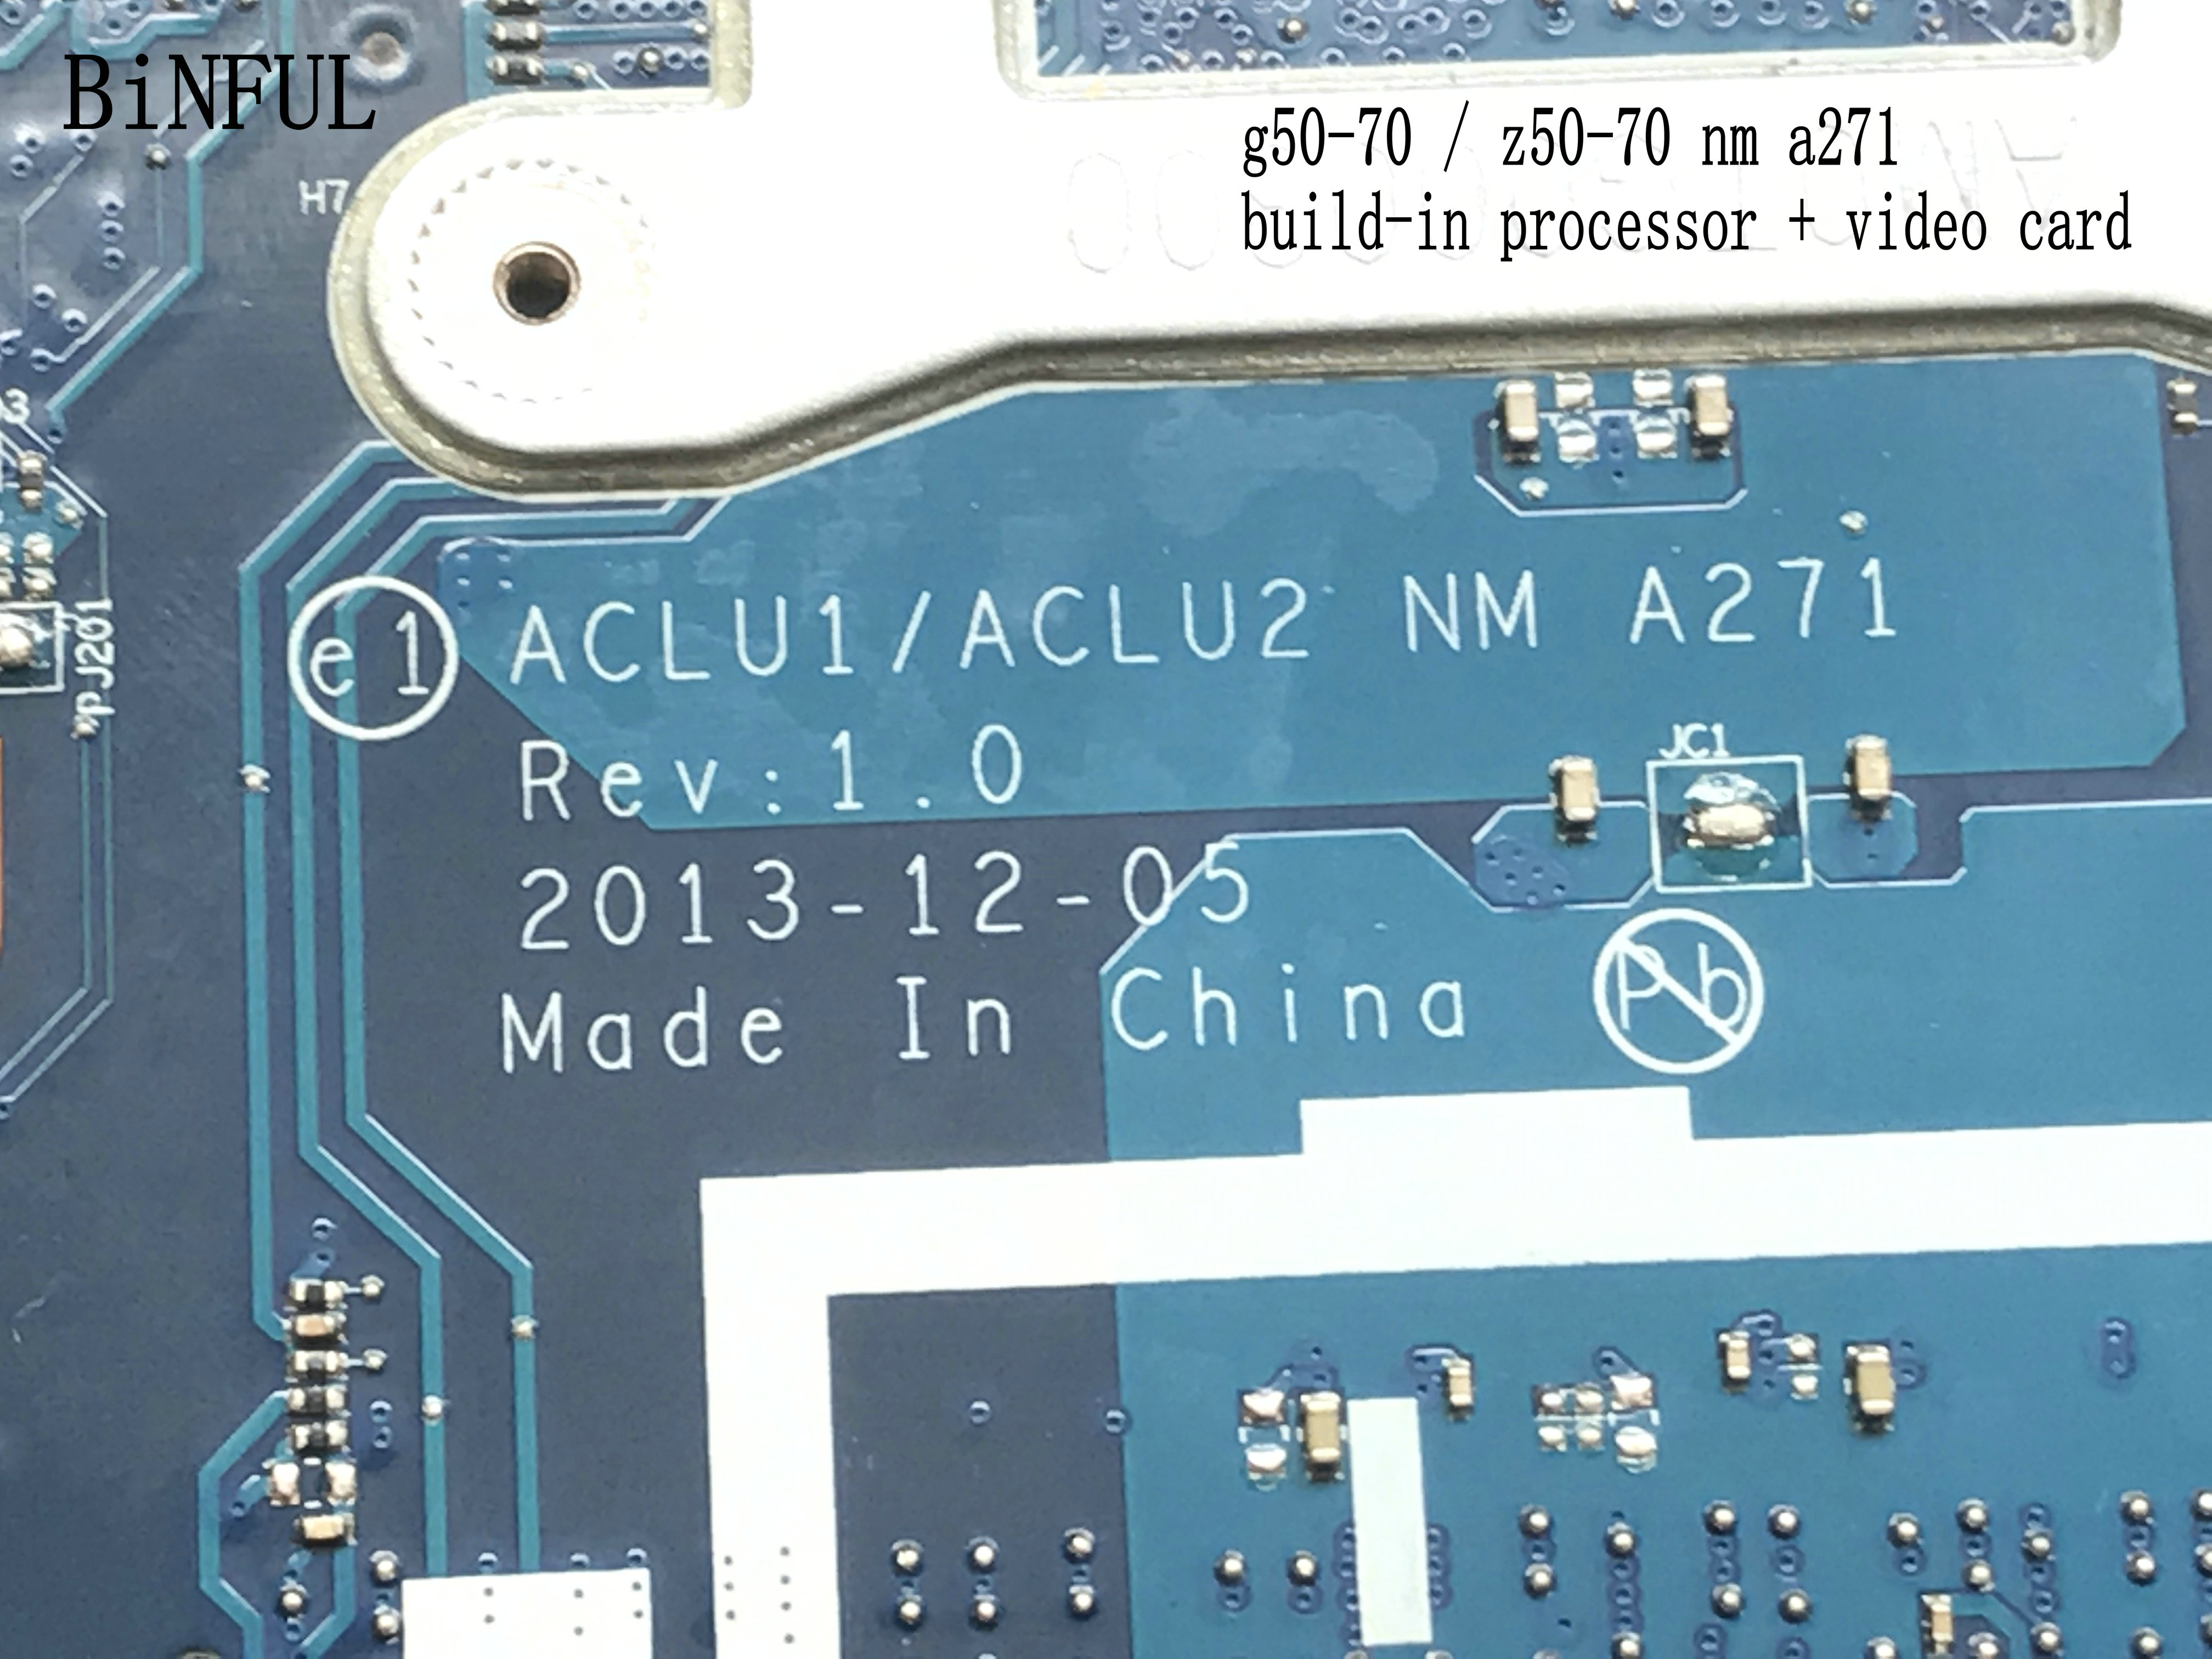 BiNFUL 100% NEW  STOCK  ACLU1 / ACLU2 NM A271  FOR LENOVO G50-70 LAPTOP MOTHERBOARD BUILD-IN PROCESSOR Celeron 2957+VIDEO CARD